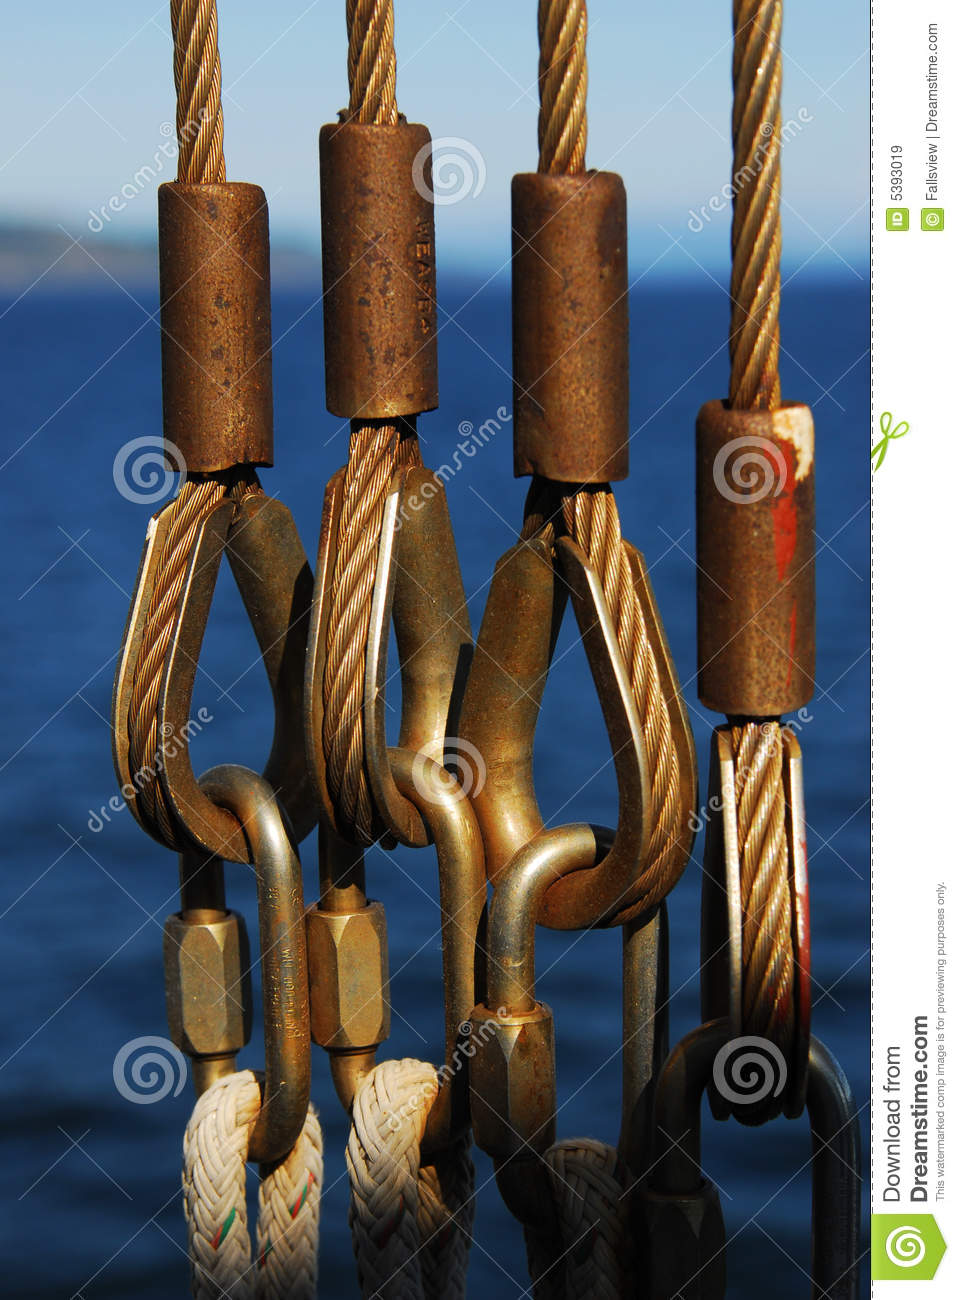 Safety cables and ropes on ferry